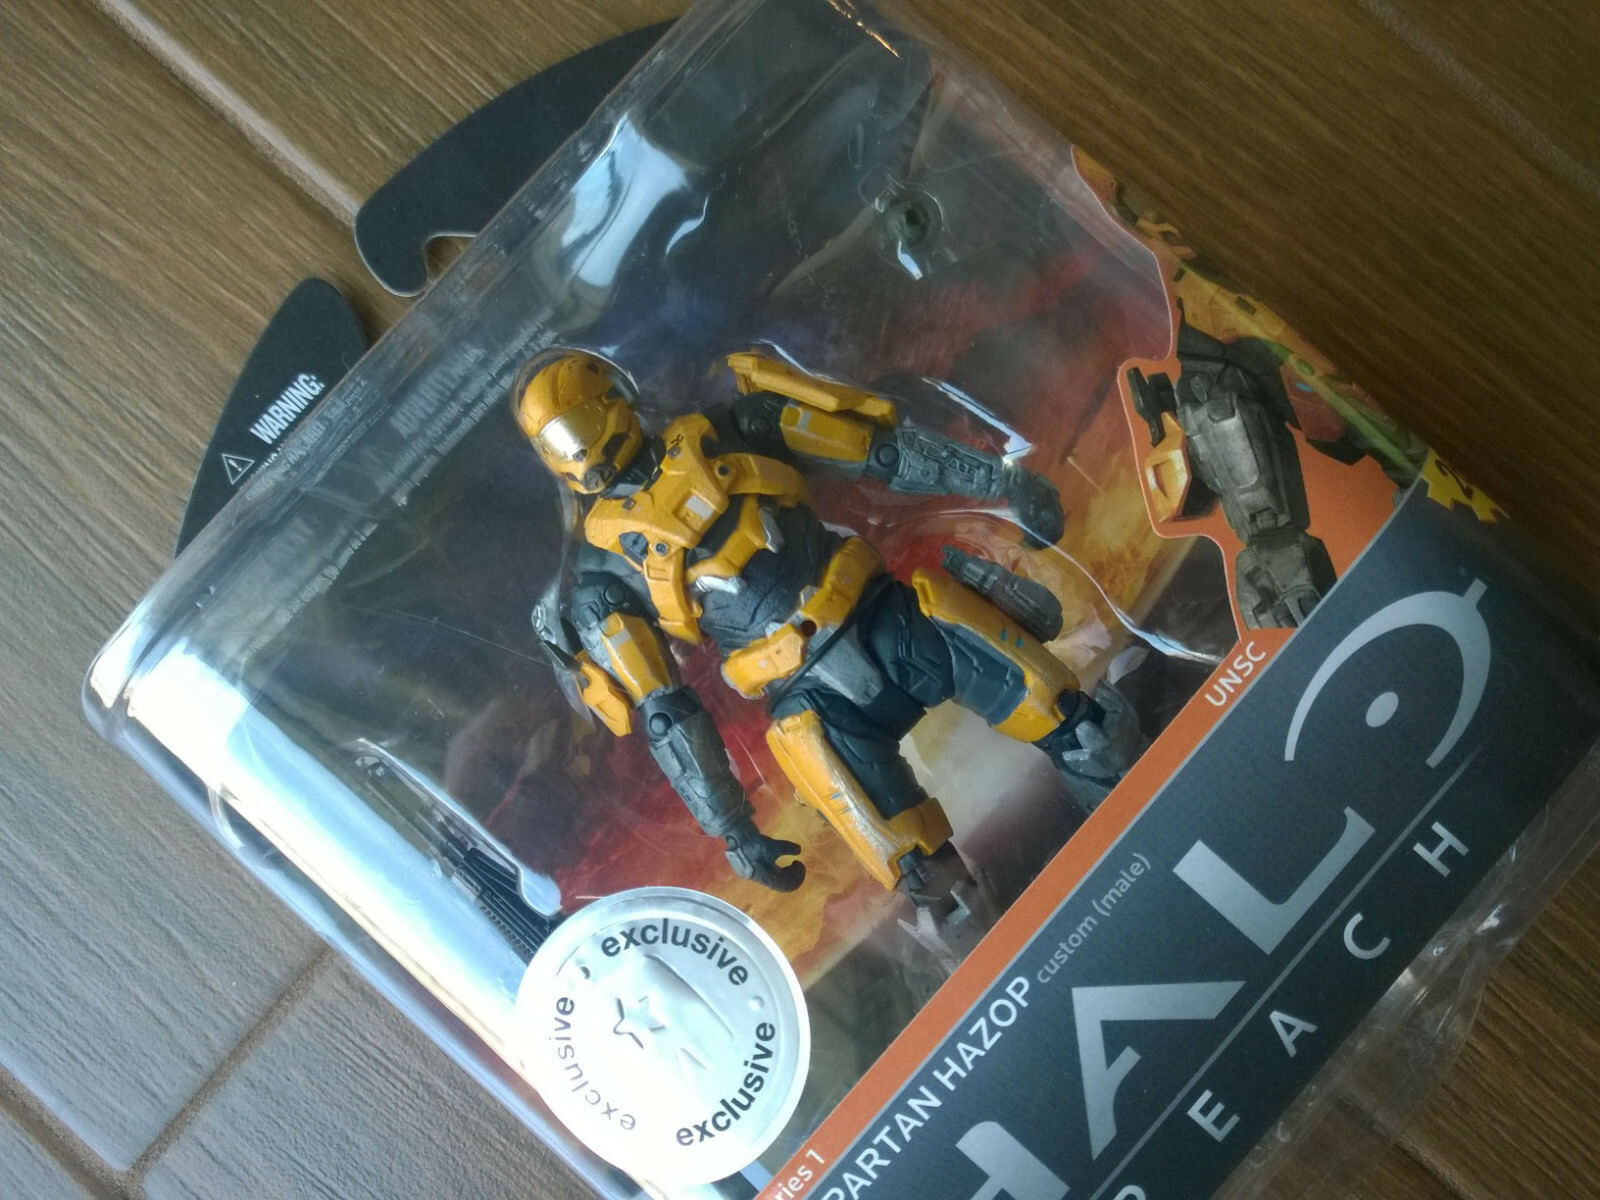 Toys R Us exclusive Halo Reach Series 1  oro HAZOP  Action Figure, new RARE